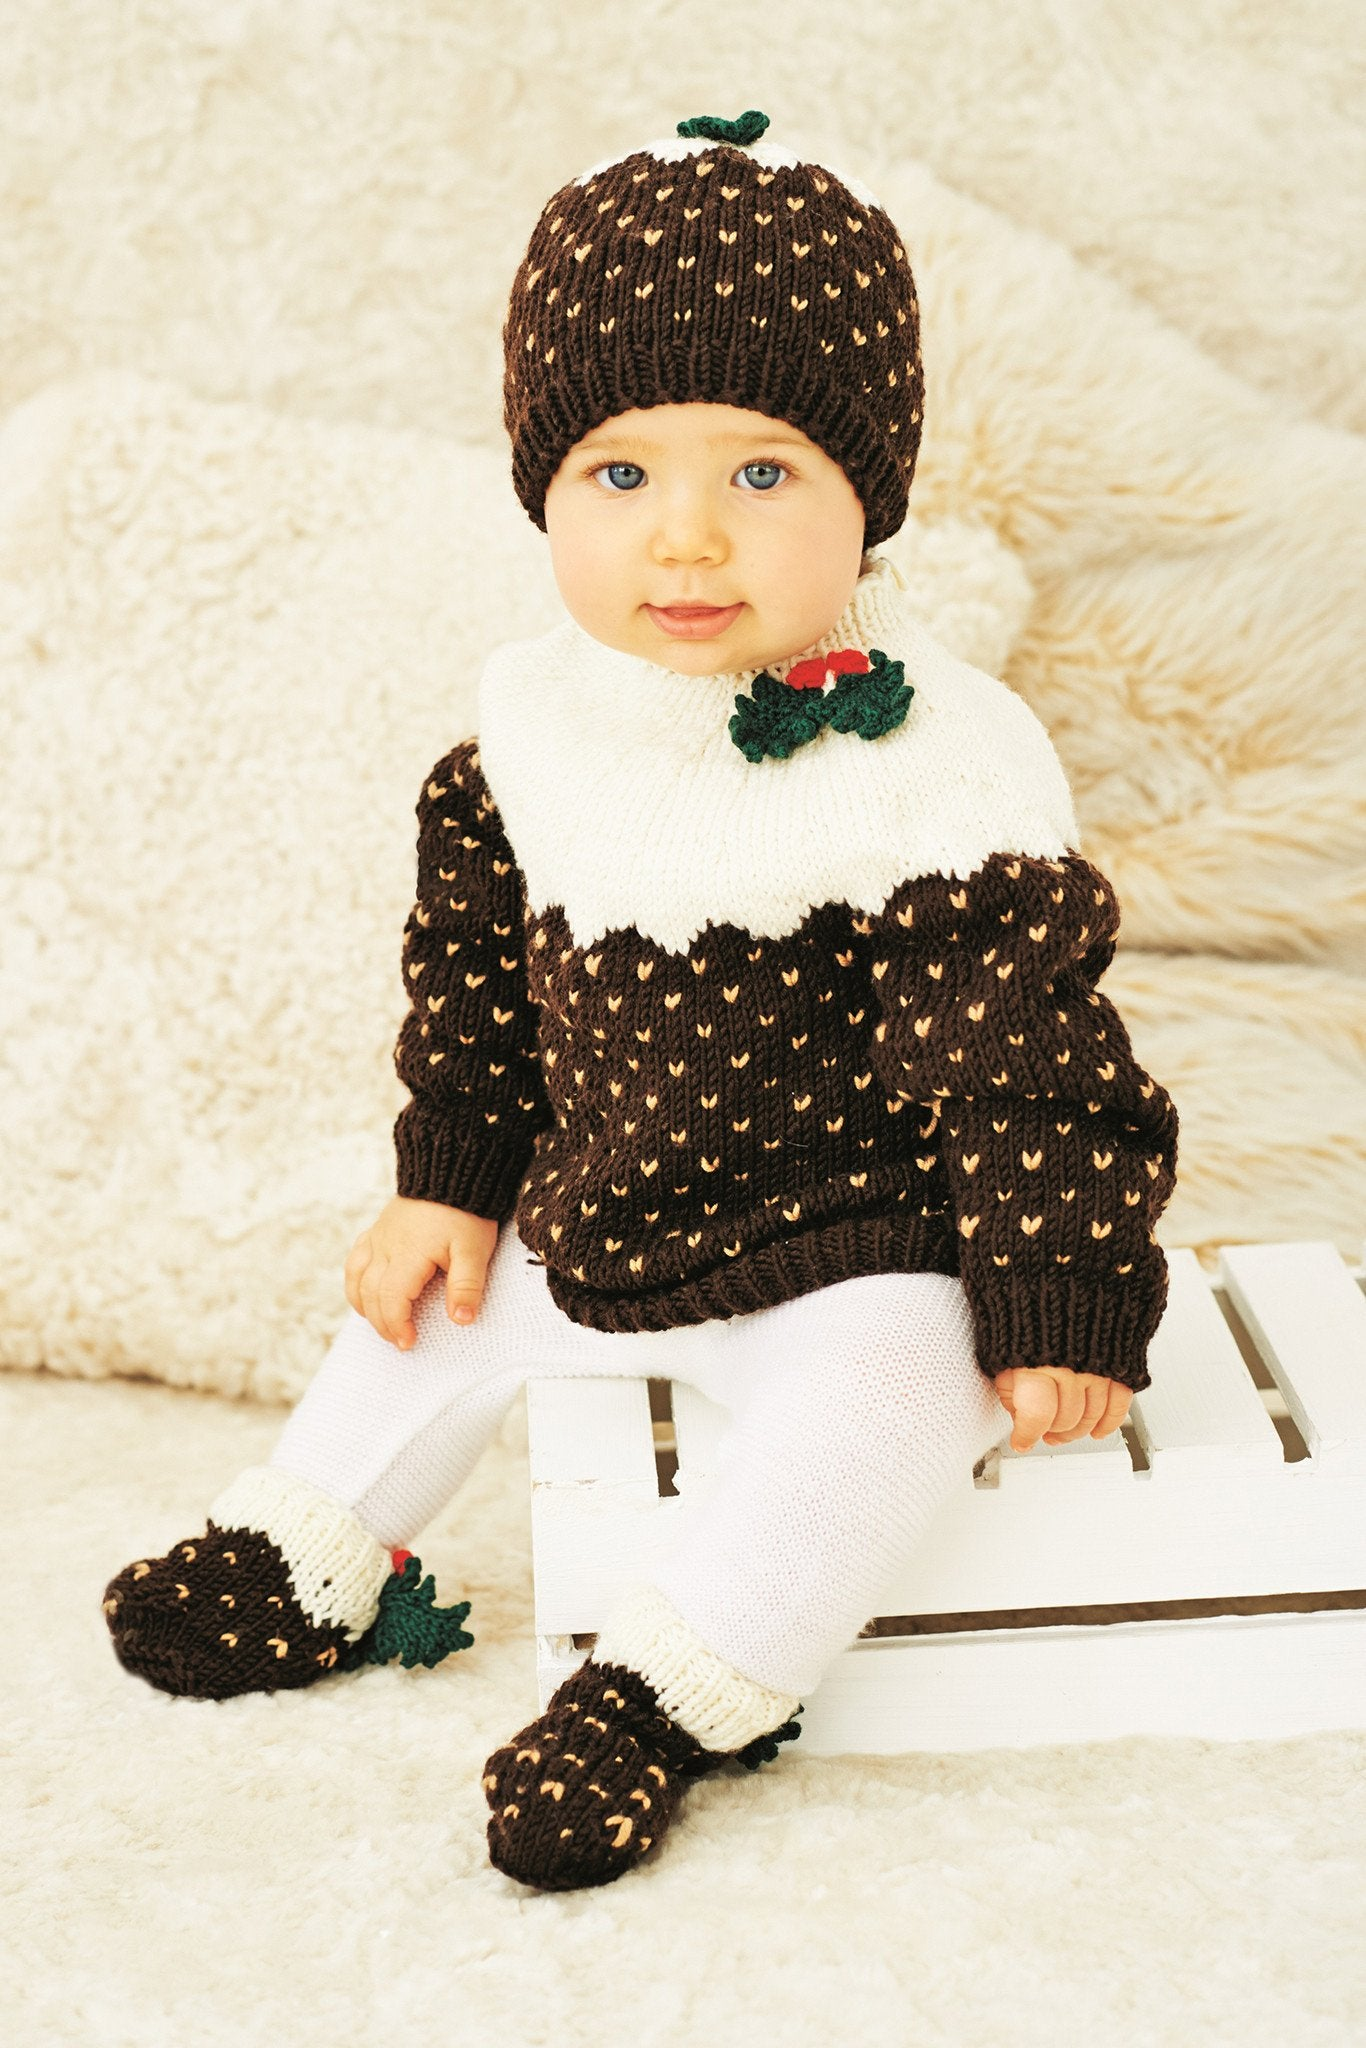 7659db836 Baby Christmas Pudding Costume & Best Christmas Outfits For Babies ...